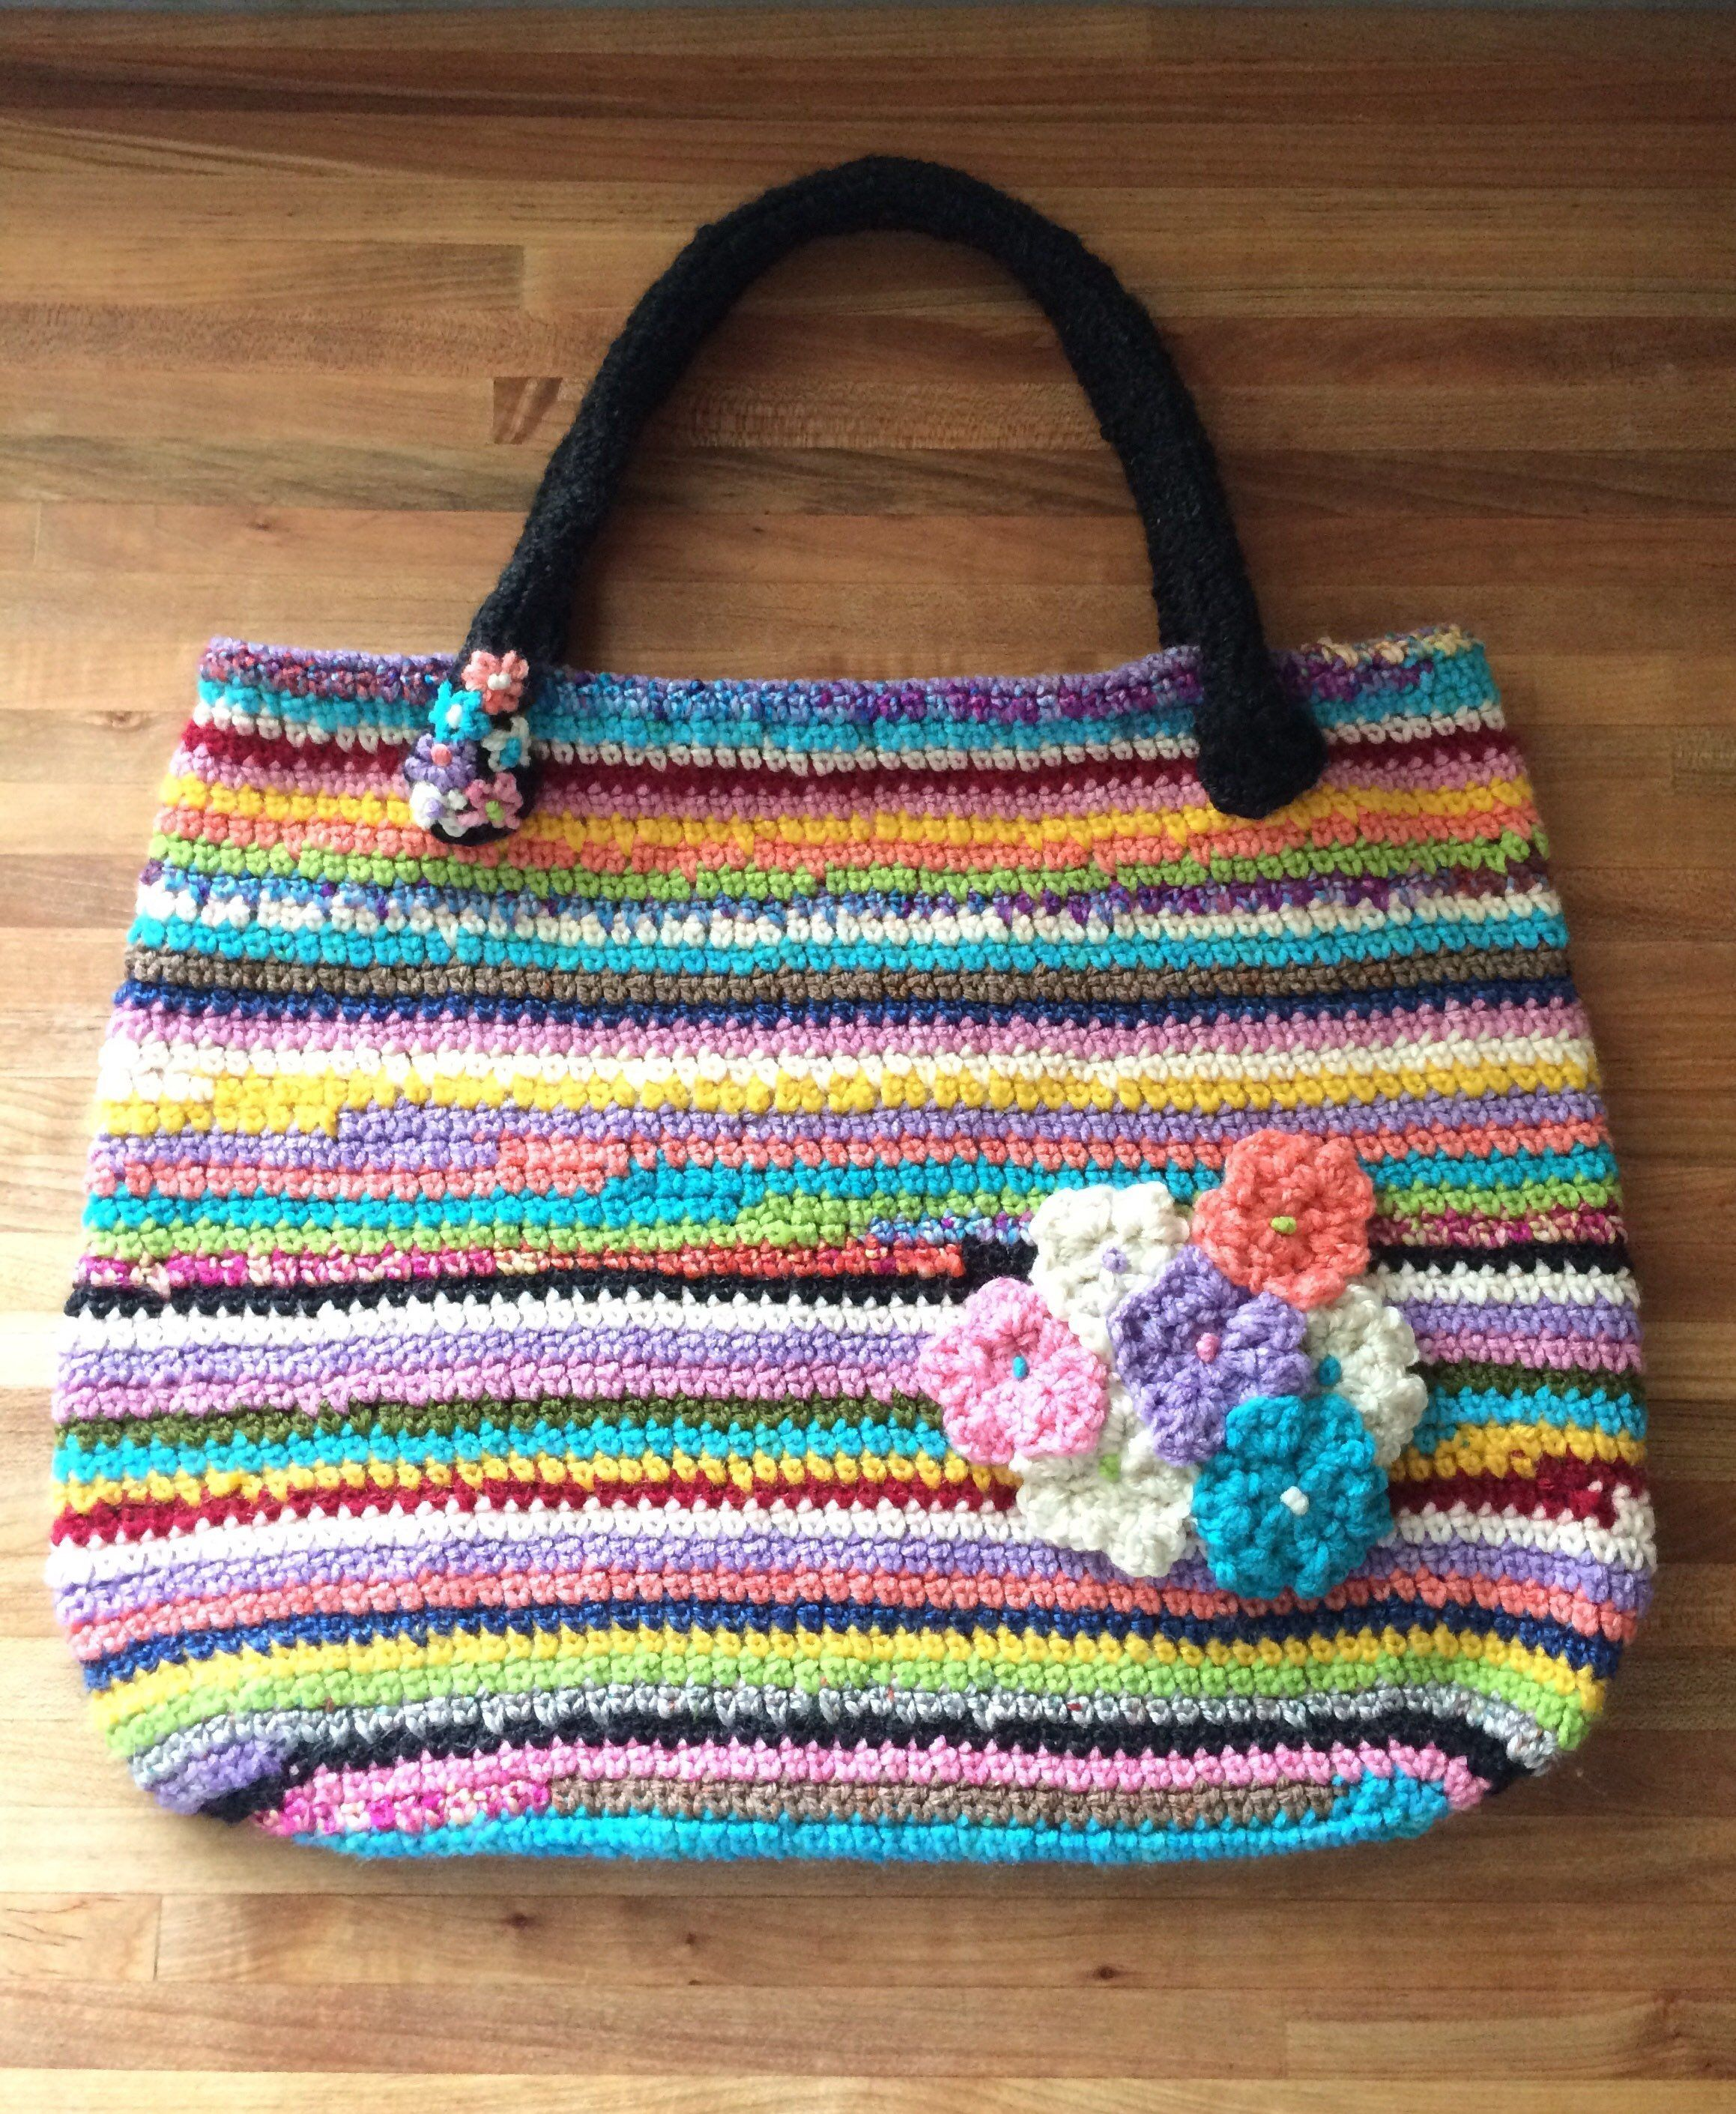 b7bd146c677d Bags   Handbag Trends   Excited to share the latest addition to my shop  Hand  Crocheted Tote Bag